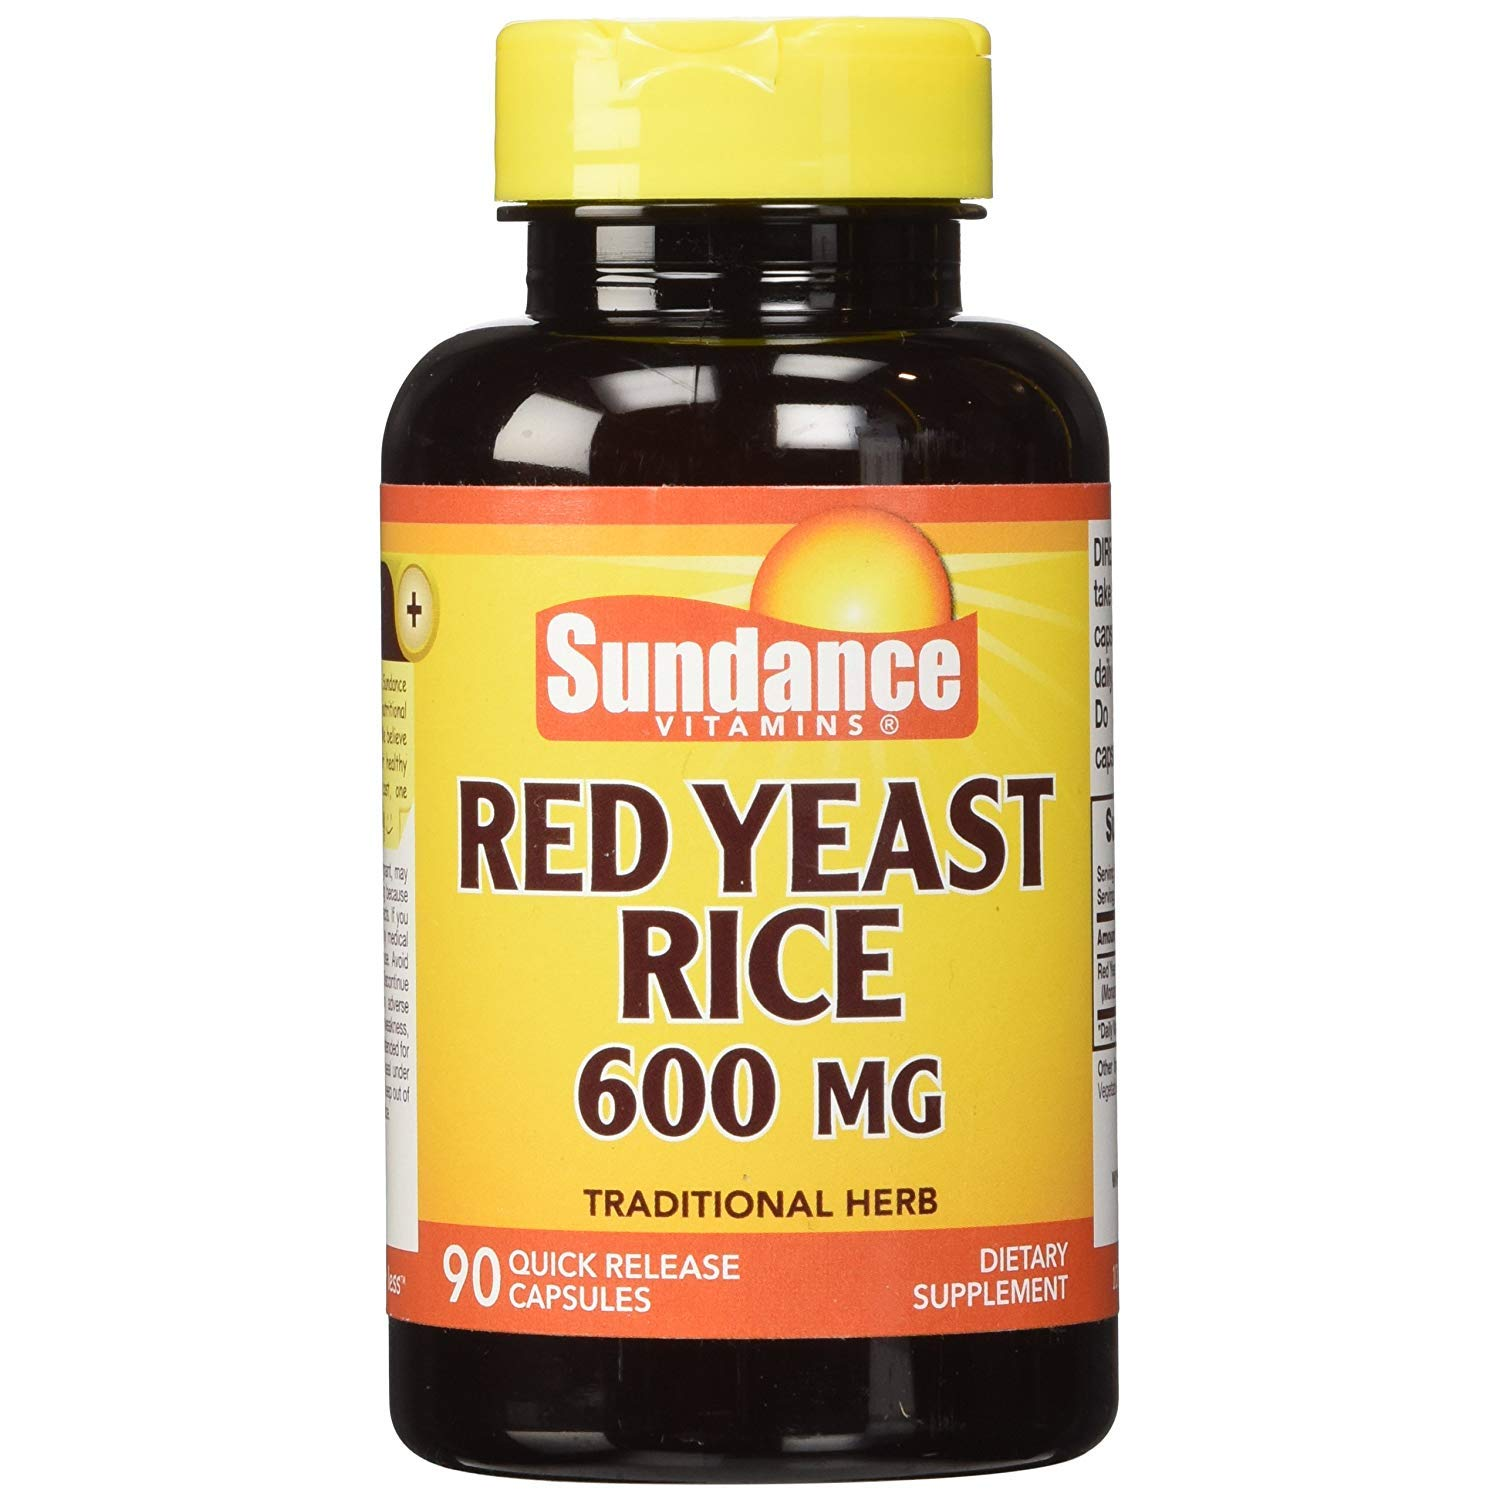 Sundance Red Yeast Rice 600 mg - 90 Quick Release Capsules, Pack of 5